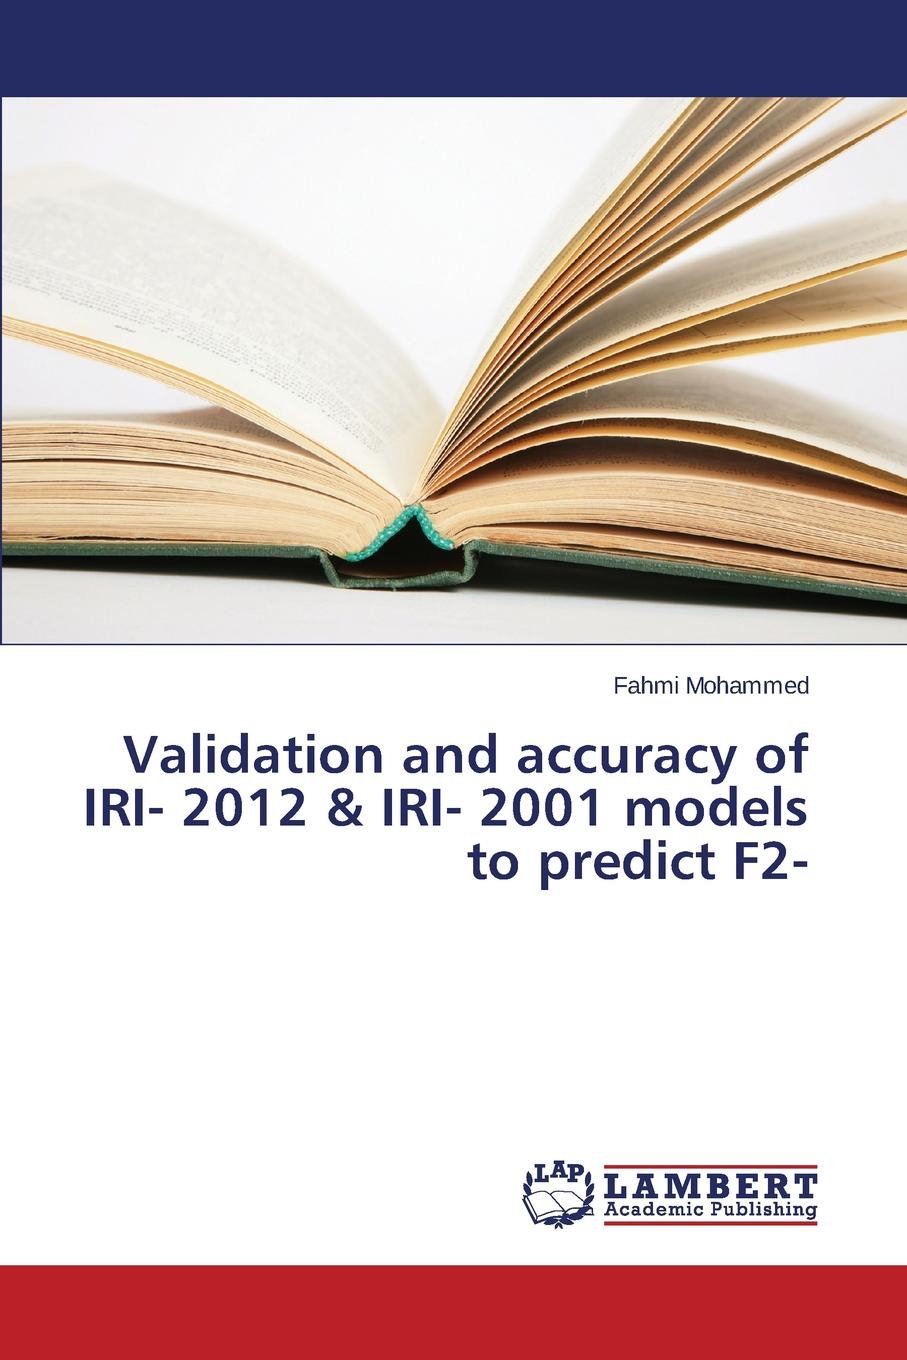 Mohammed Fahmi Validation and accuracy of IRI- 2012 . 2001 models to predict F2-